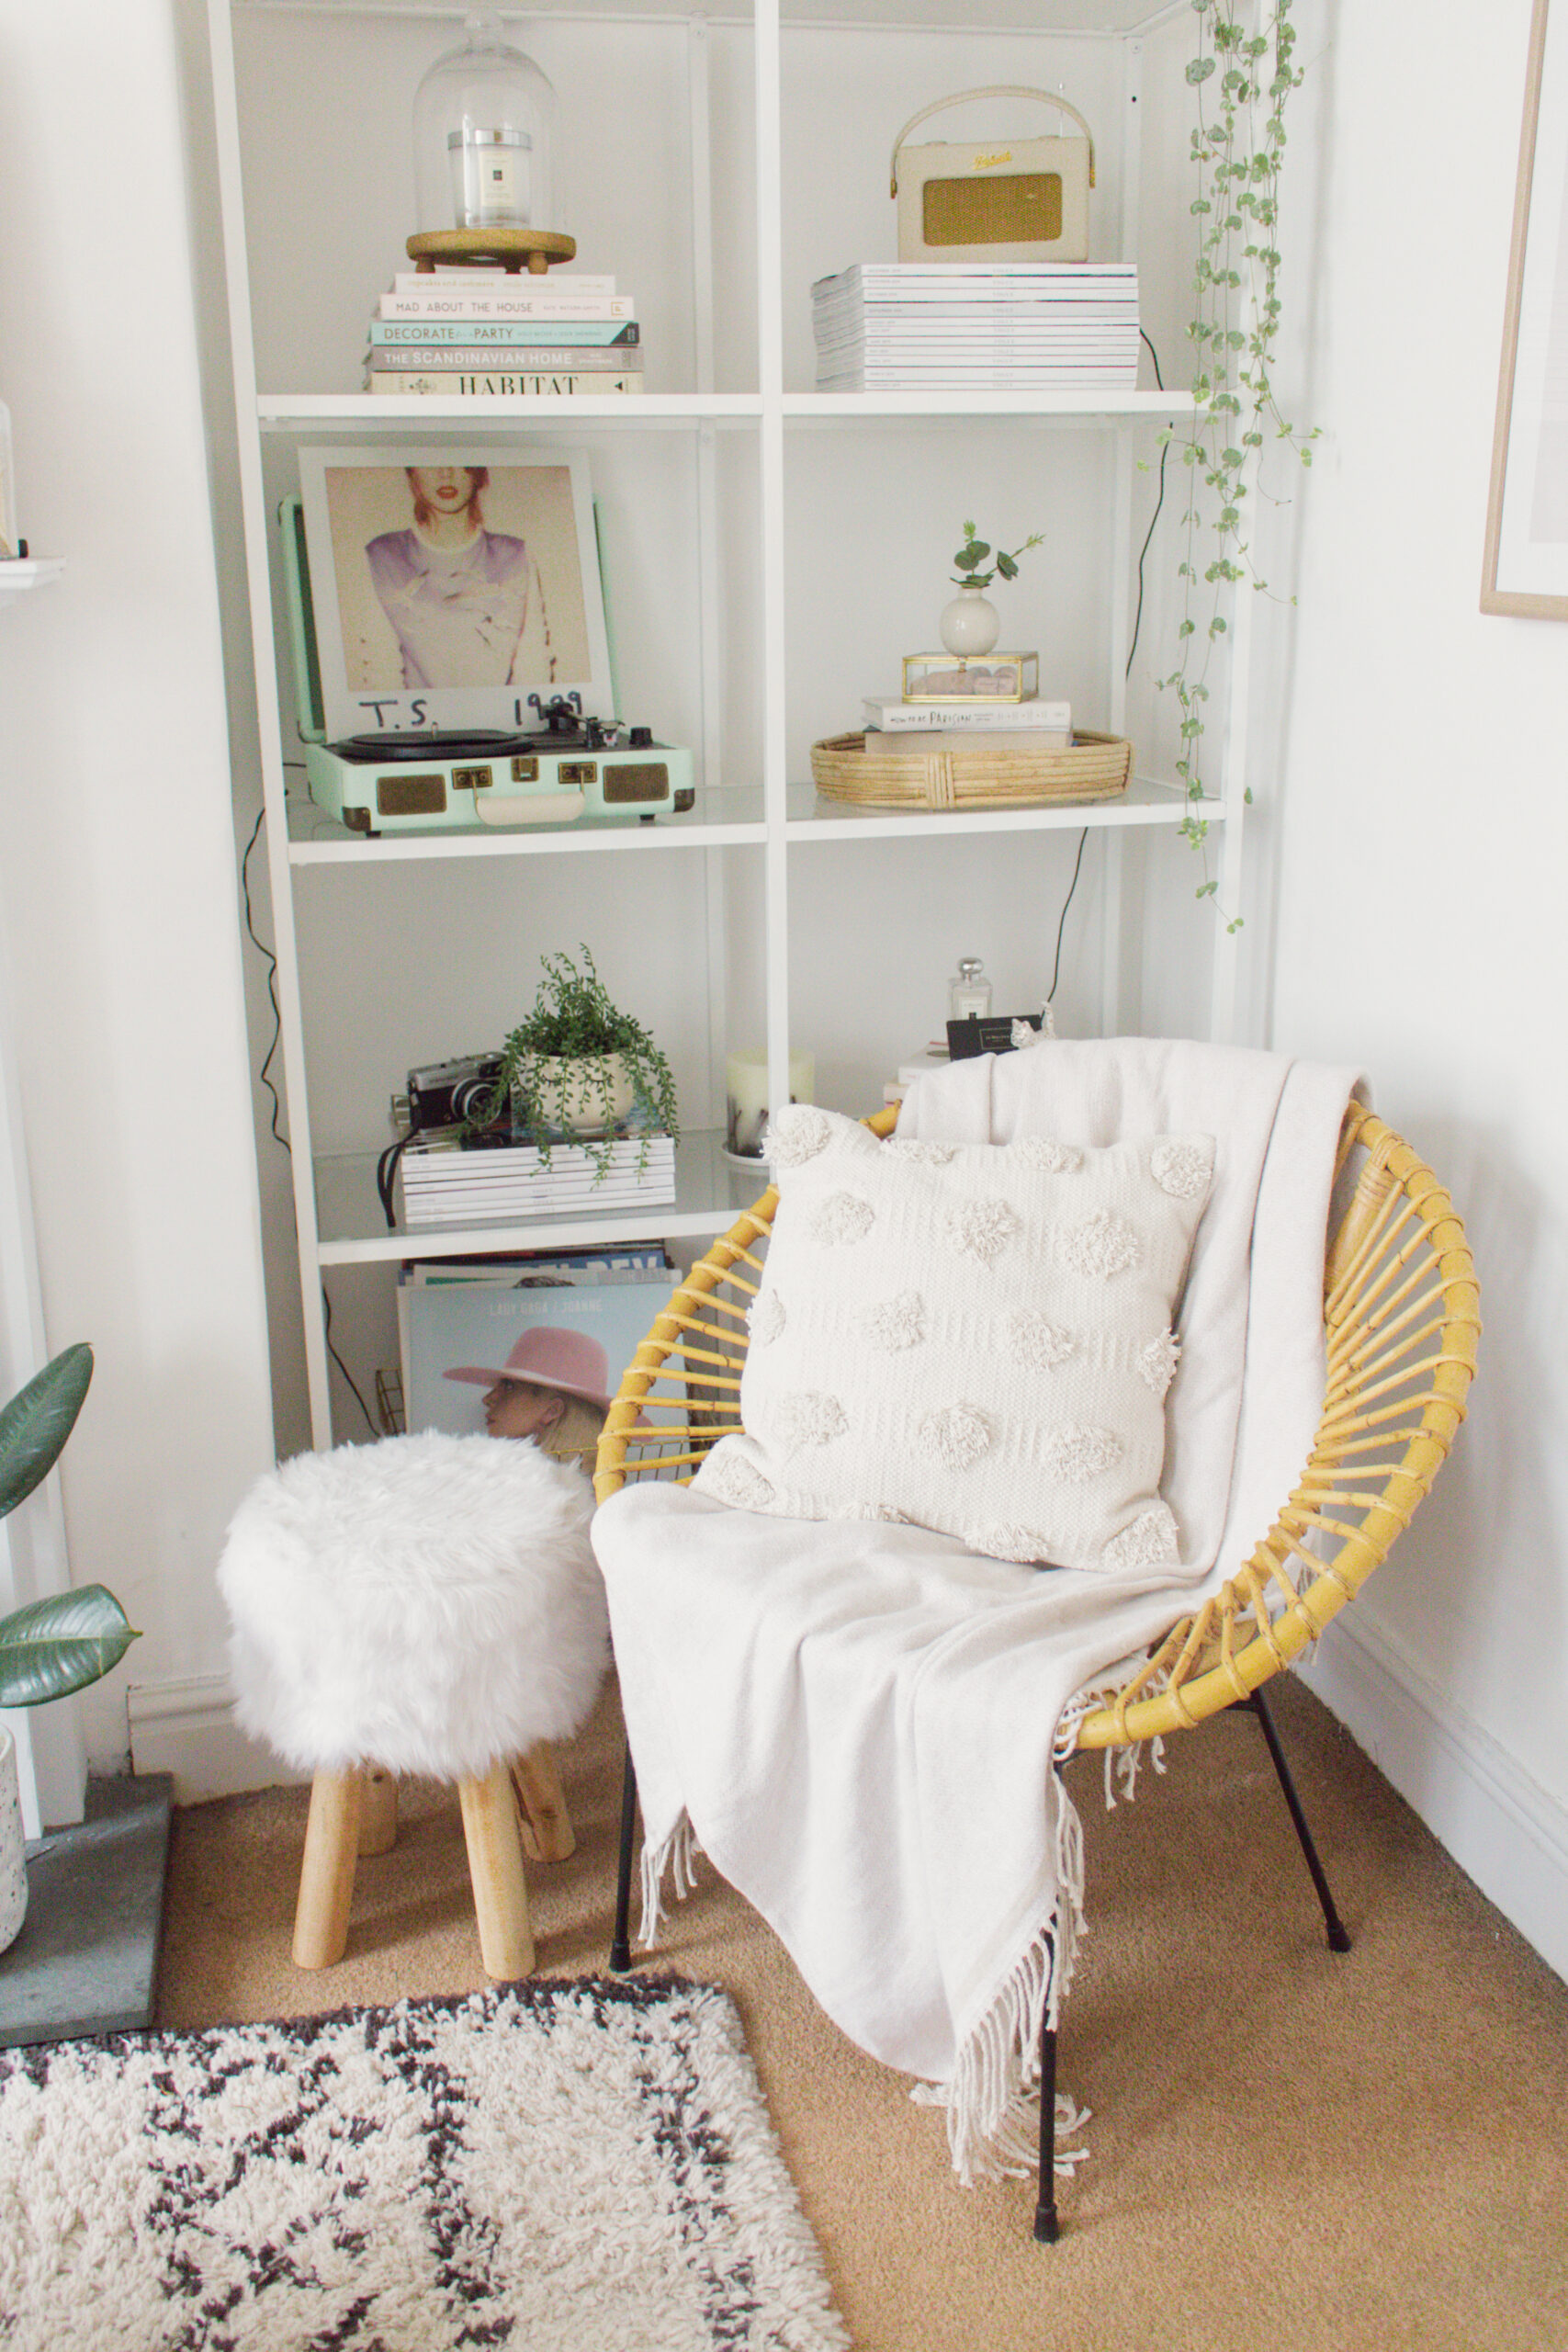 an edited lifestyle interior creating cosy corners